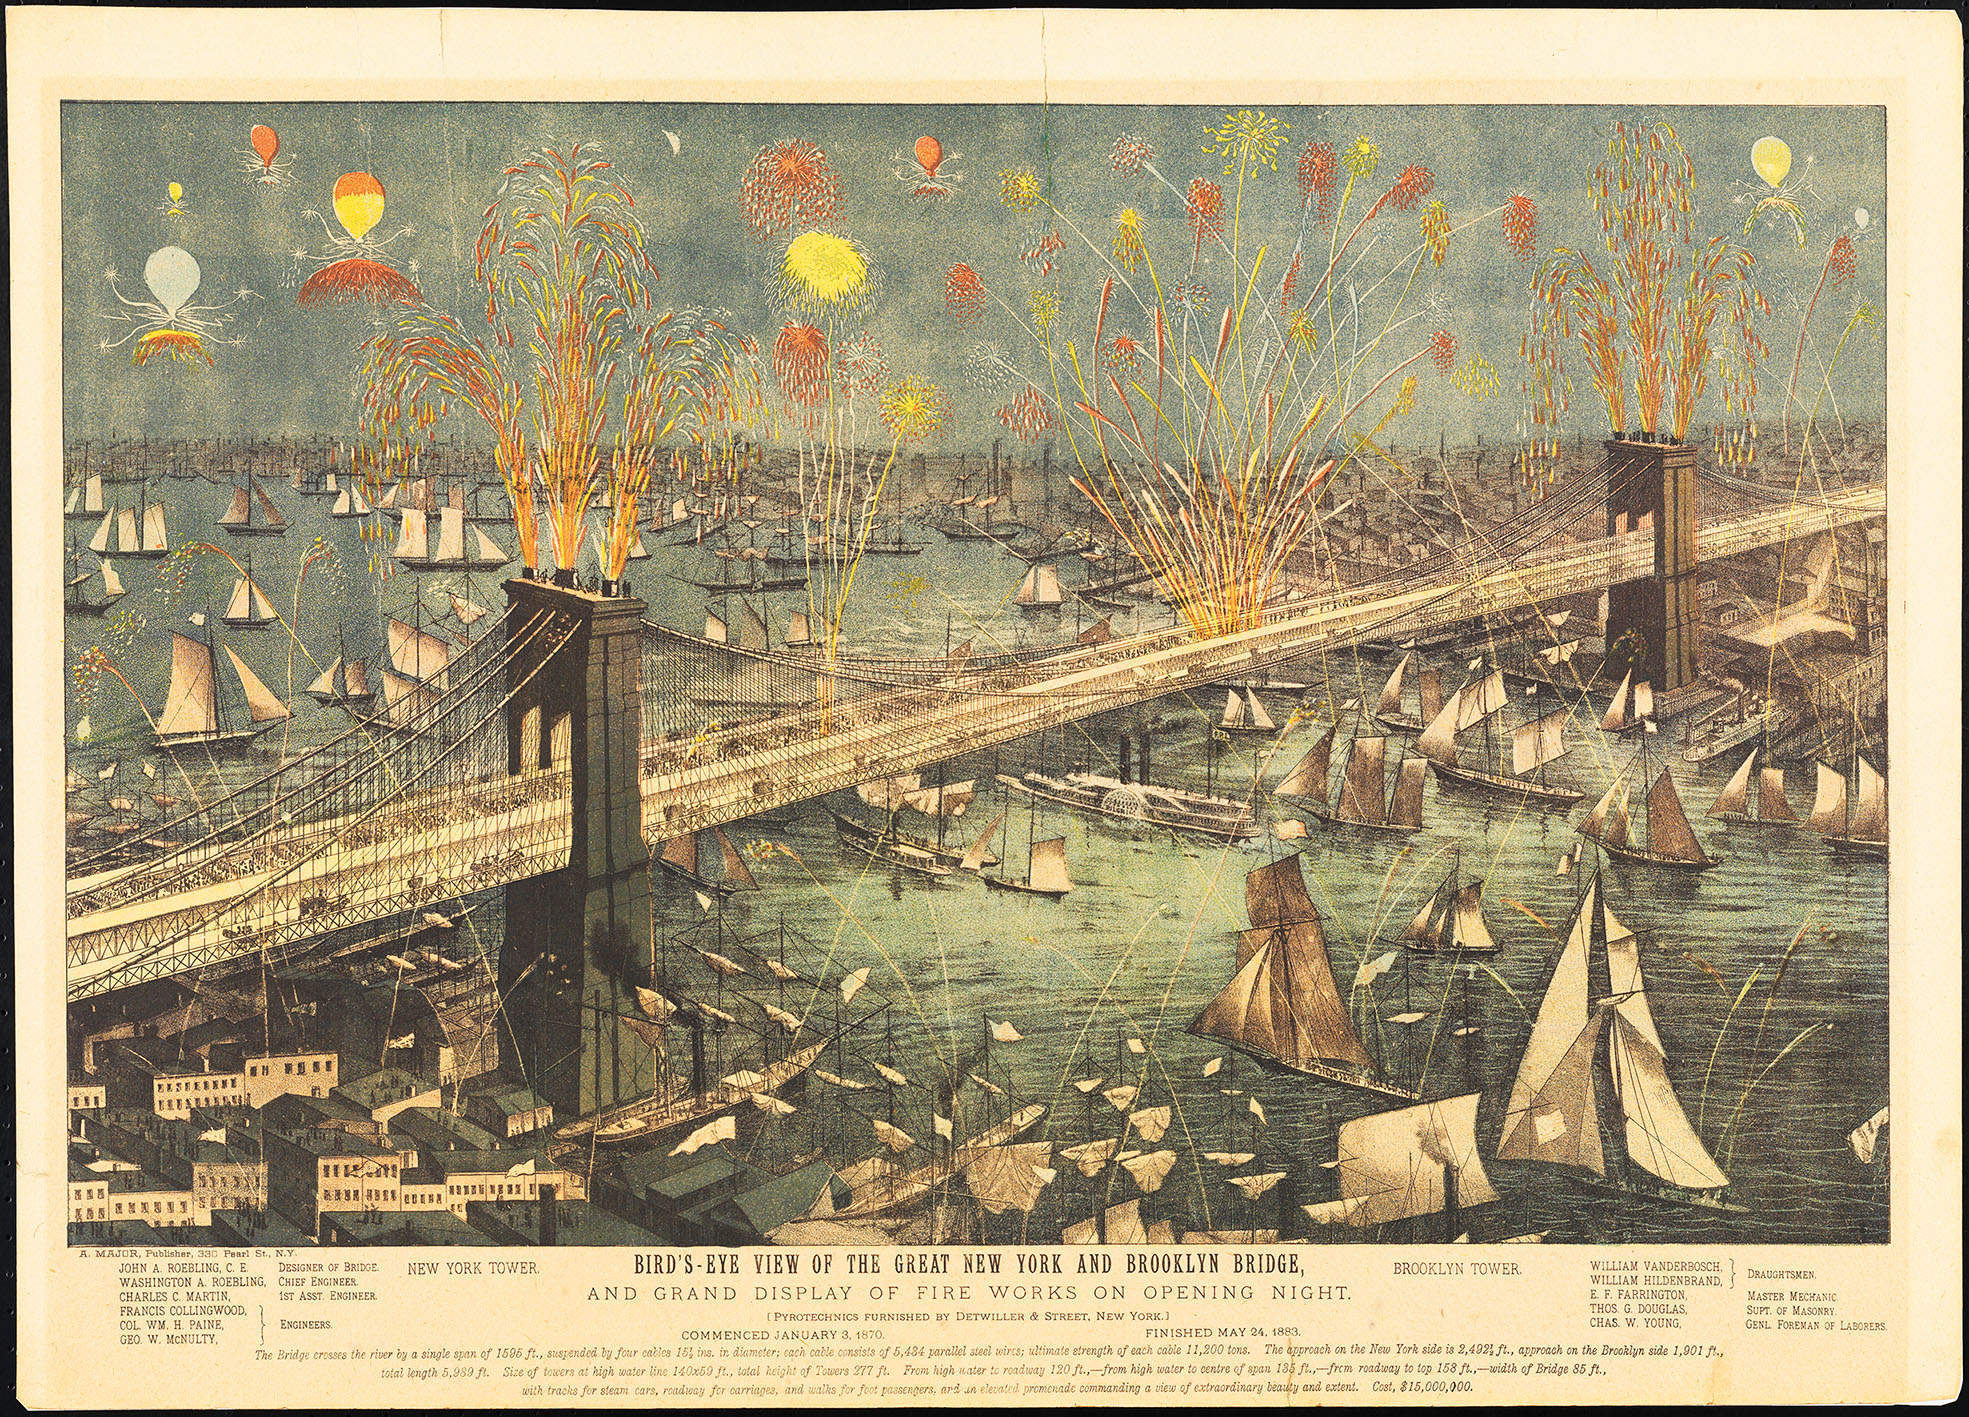 From shore to shining shore: Erica Wagner's vivid account of the building of the Brooklyn Bridge